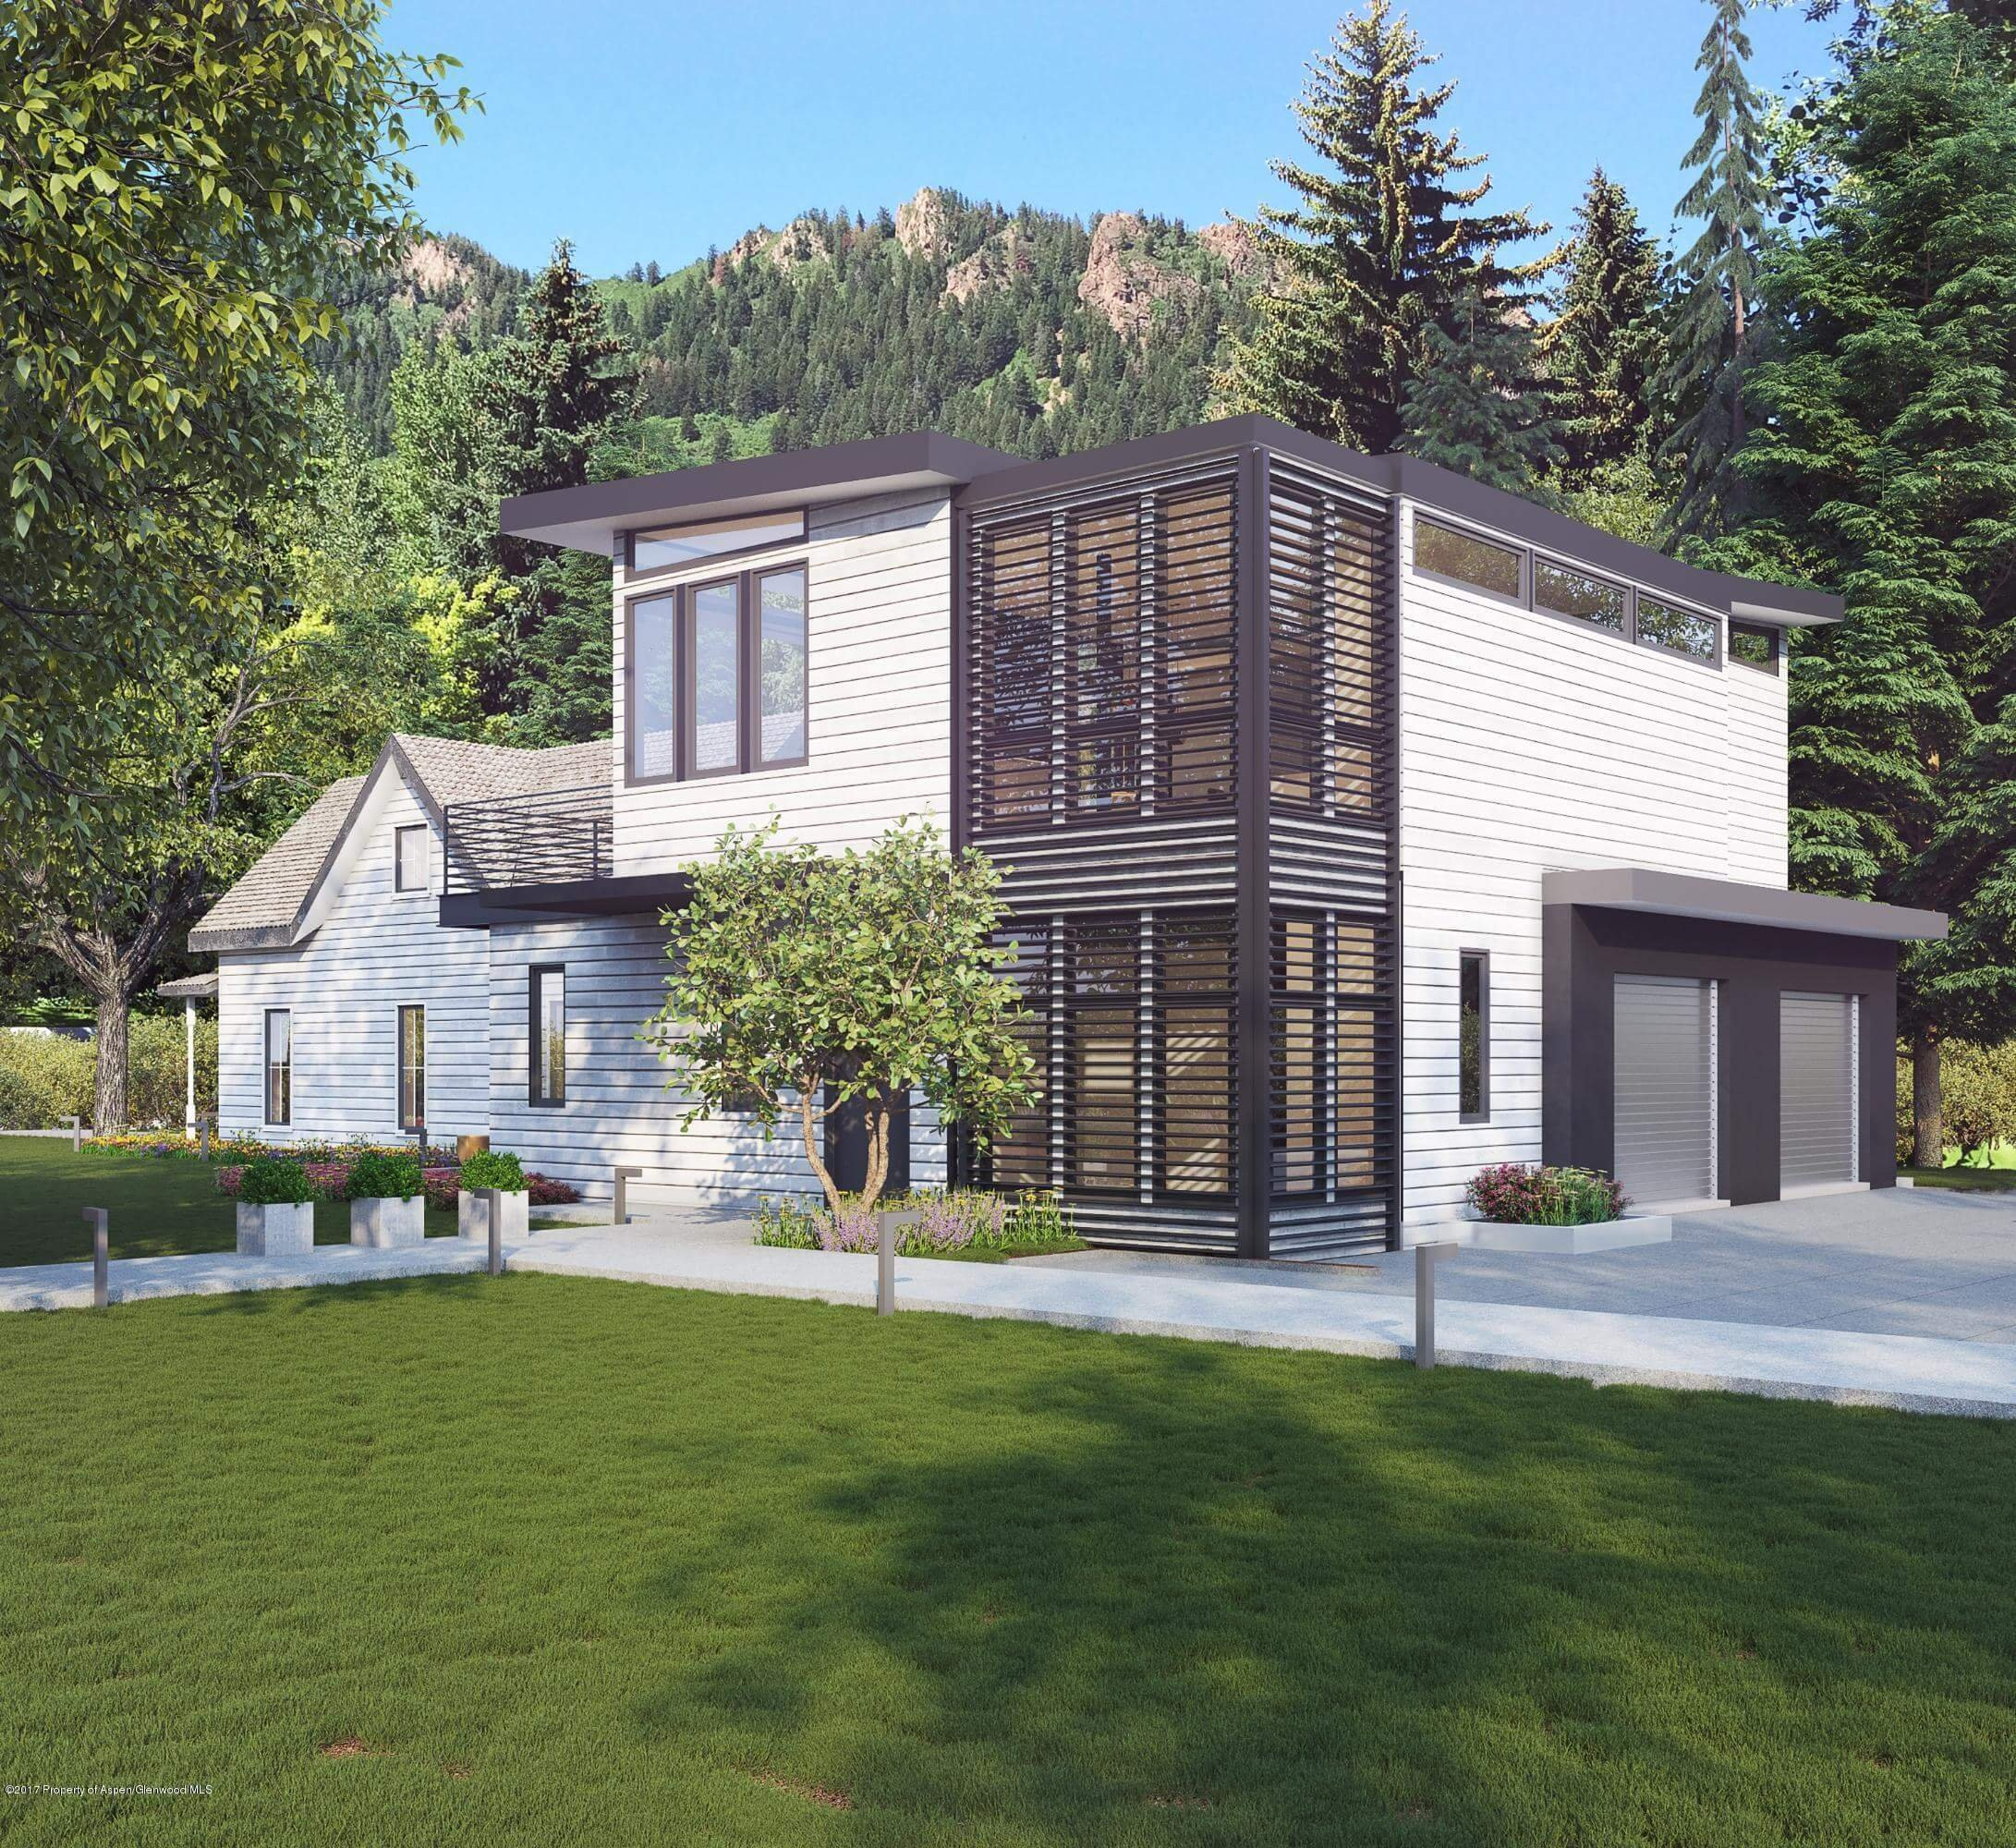 New 203 N Monarch St Aspen Townhome Closes at $8.995M/$2,637 sq ft Unfurnished Image